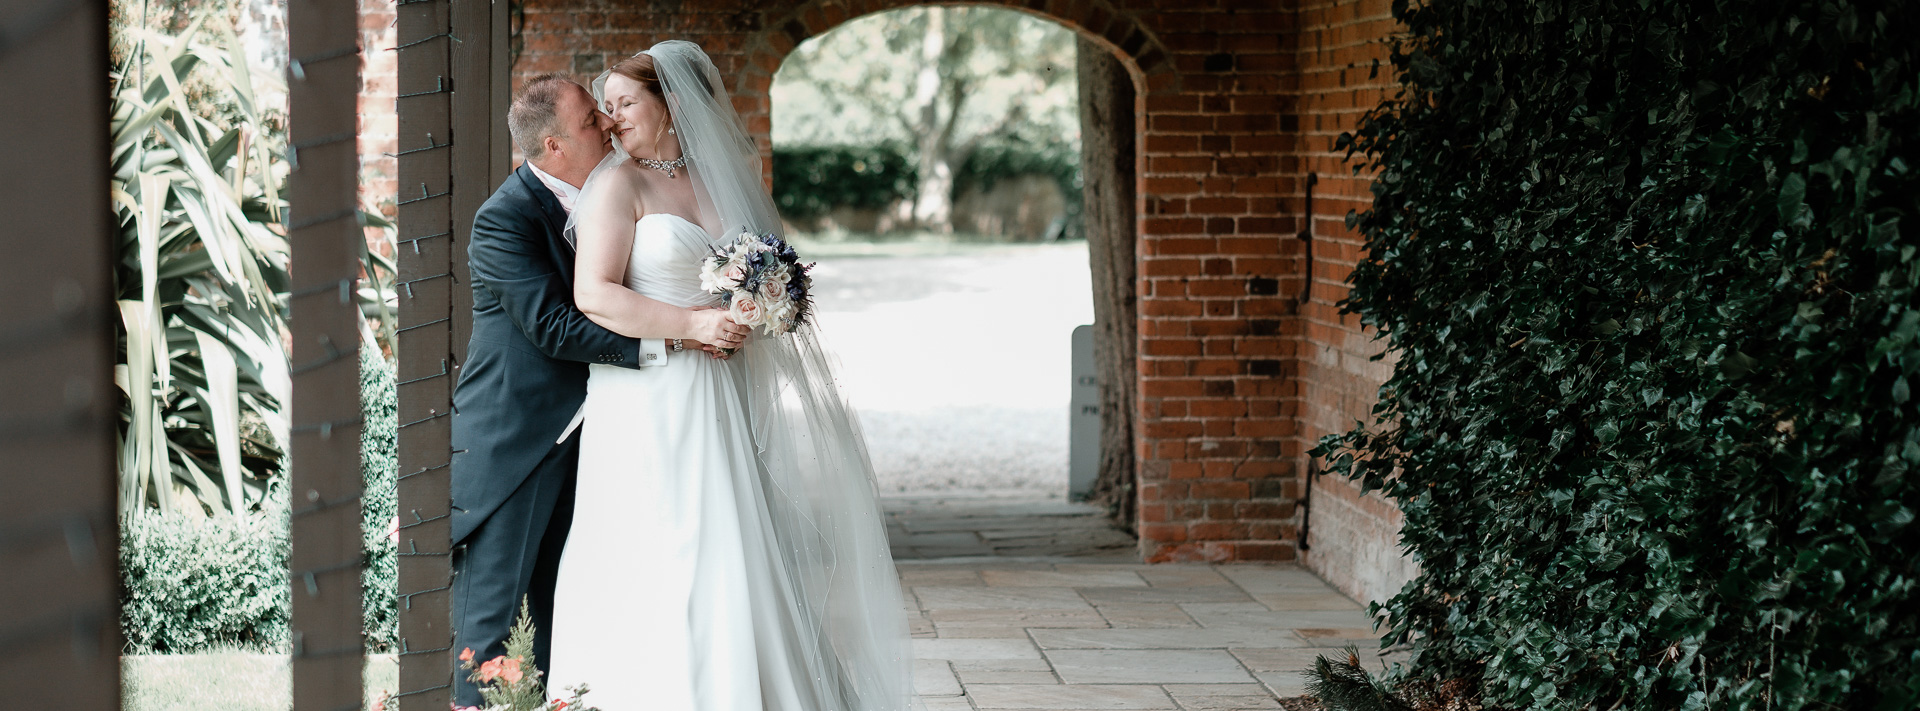 Eira and Mark's Wedding at Woodhall Manor